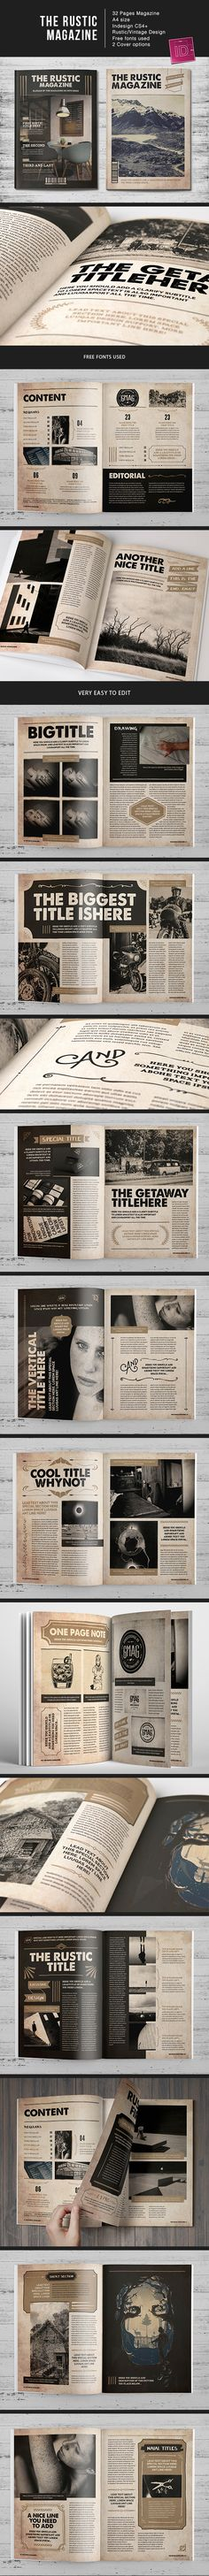 The Rustic MGZ by Lucas Iacono, via Behance